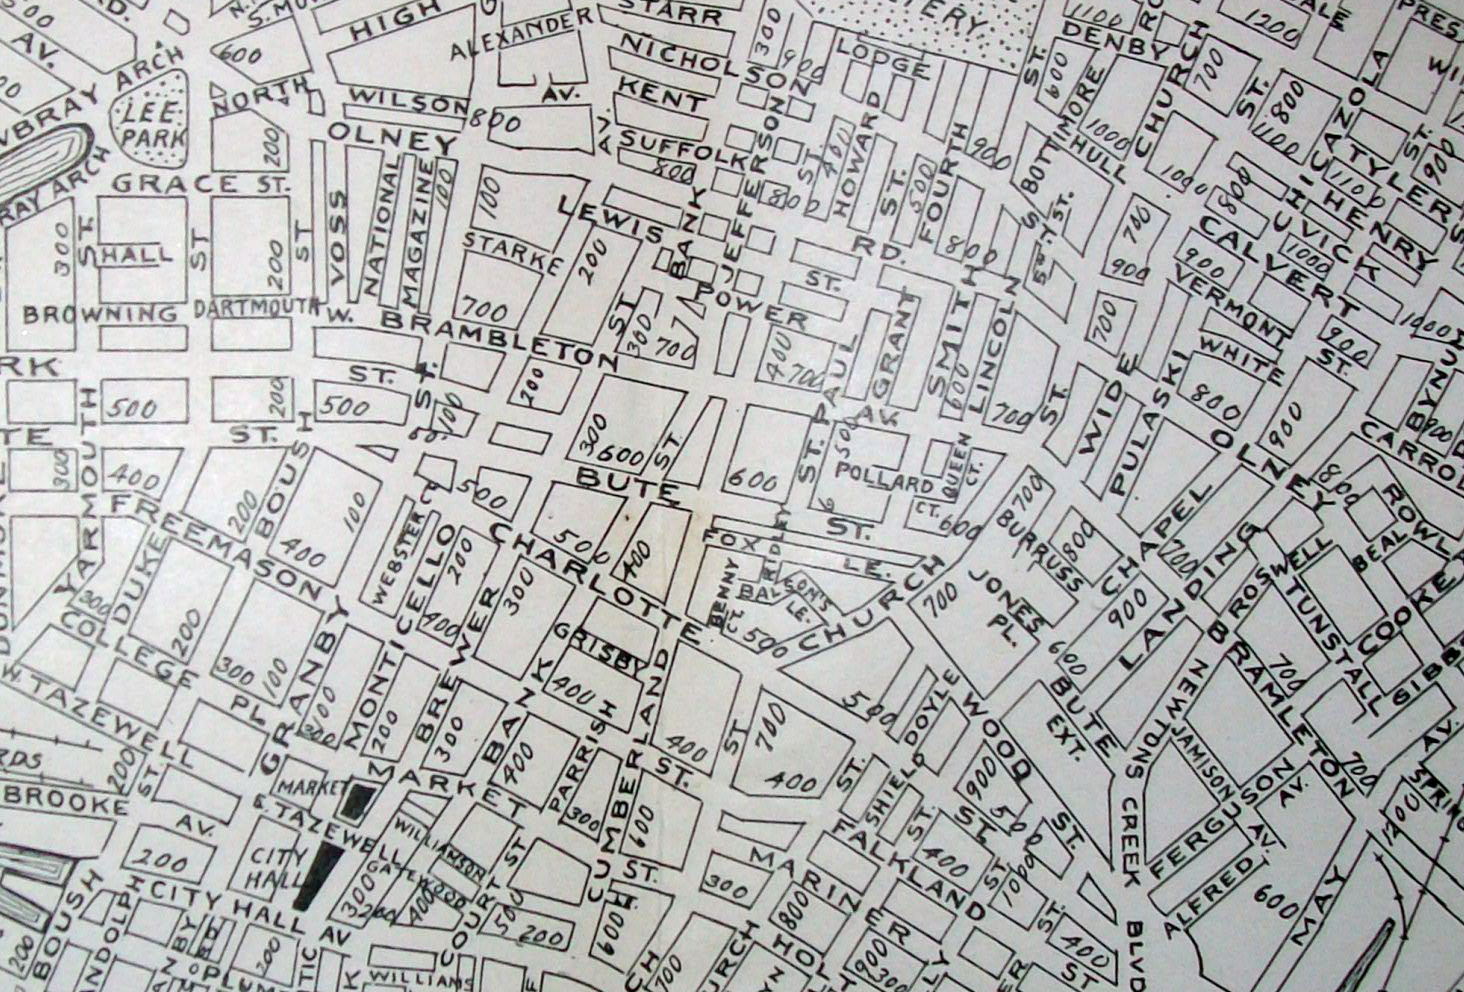 Old Maps American Cities In Decades Past Warning Large Images Norfolk